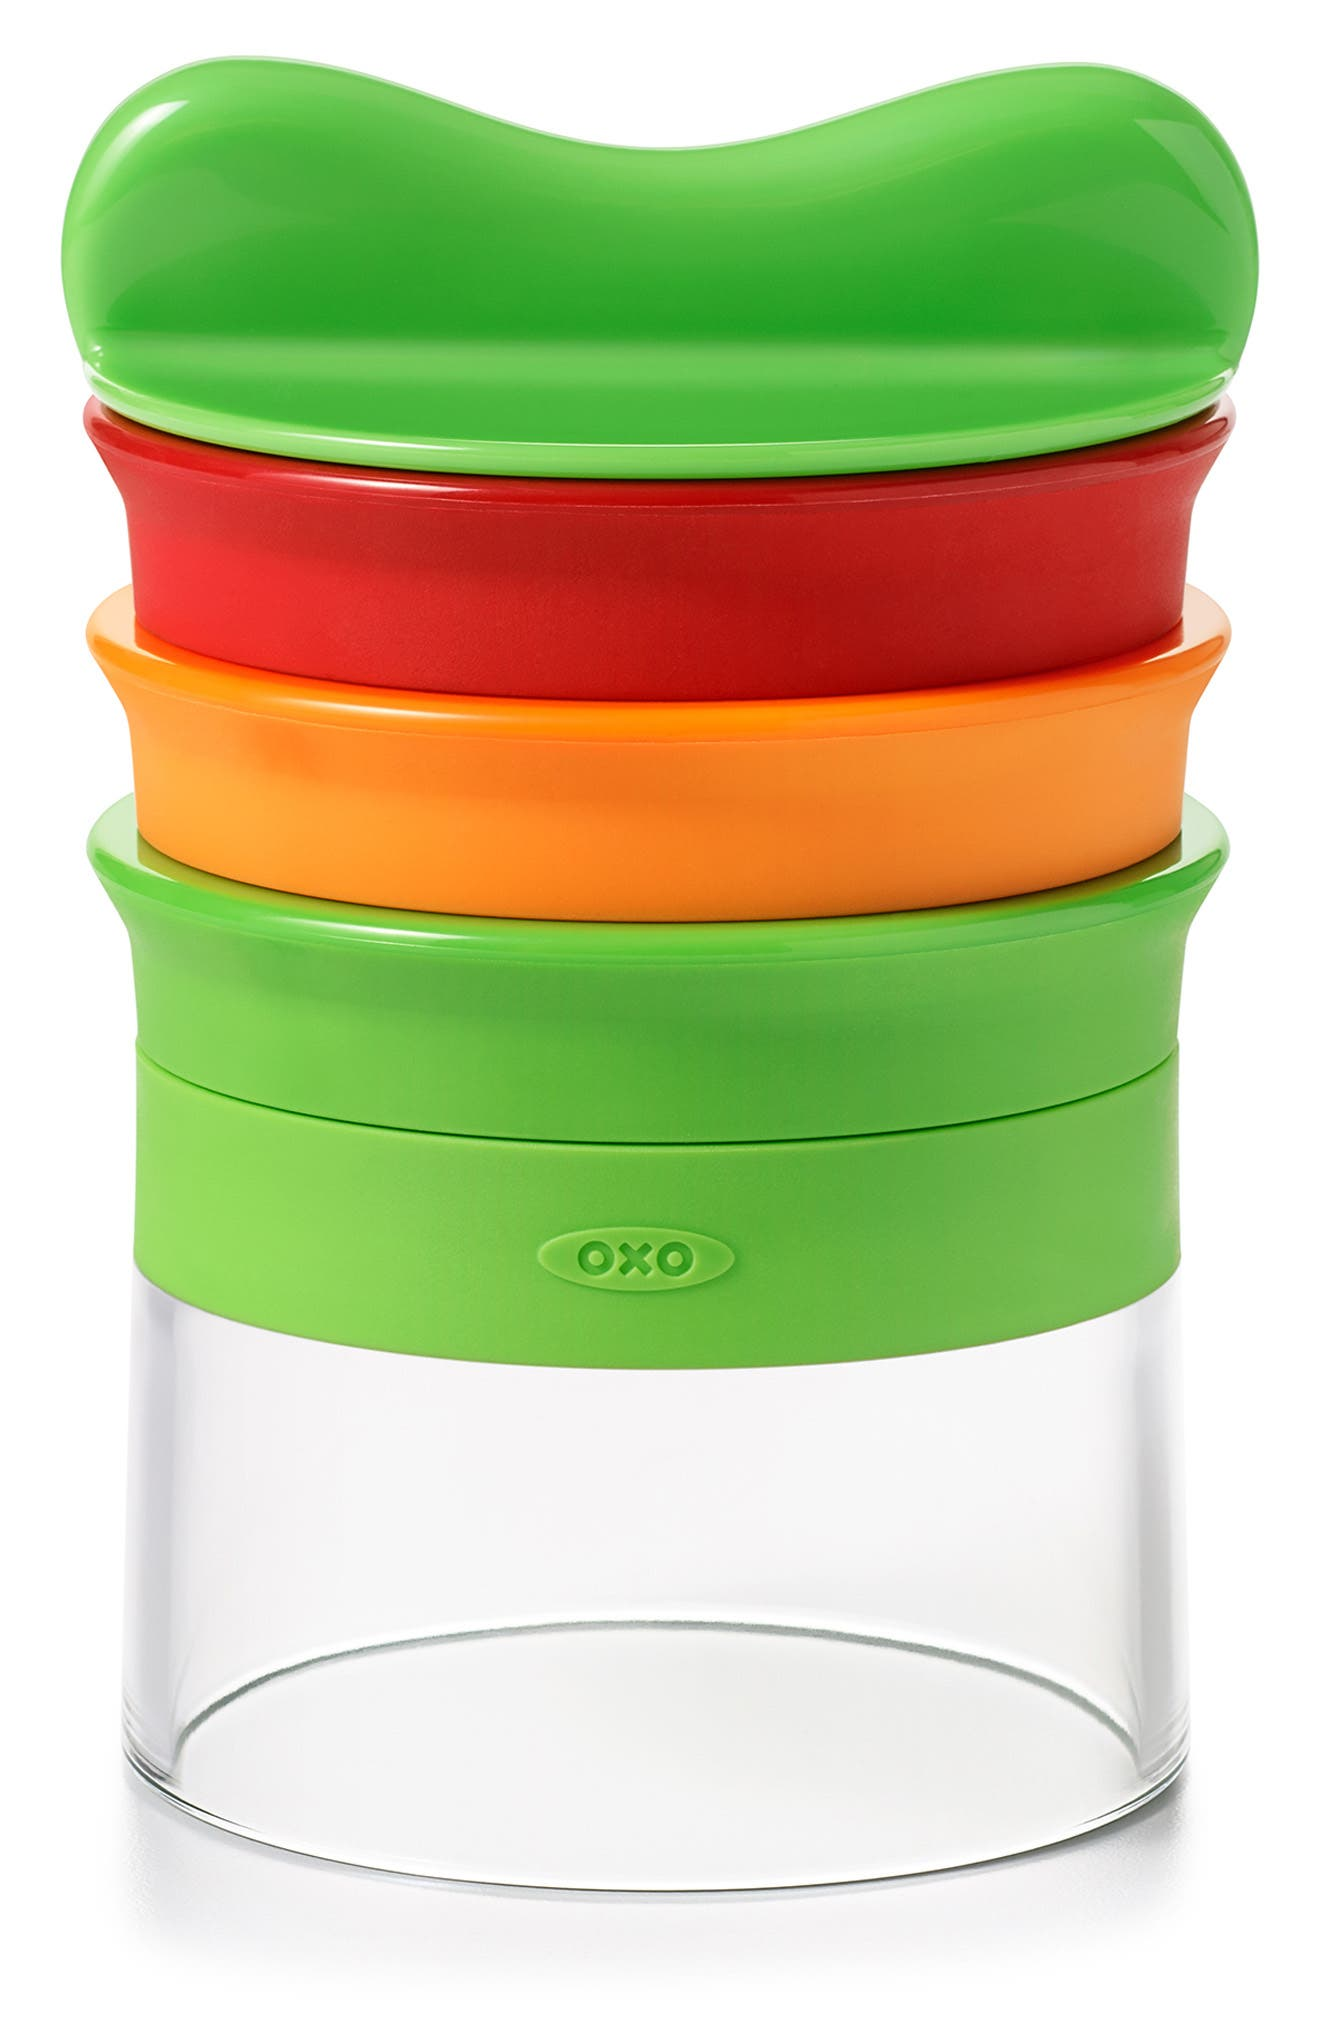 Image of Oxo 3-Blade Hand Held Spiralizer